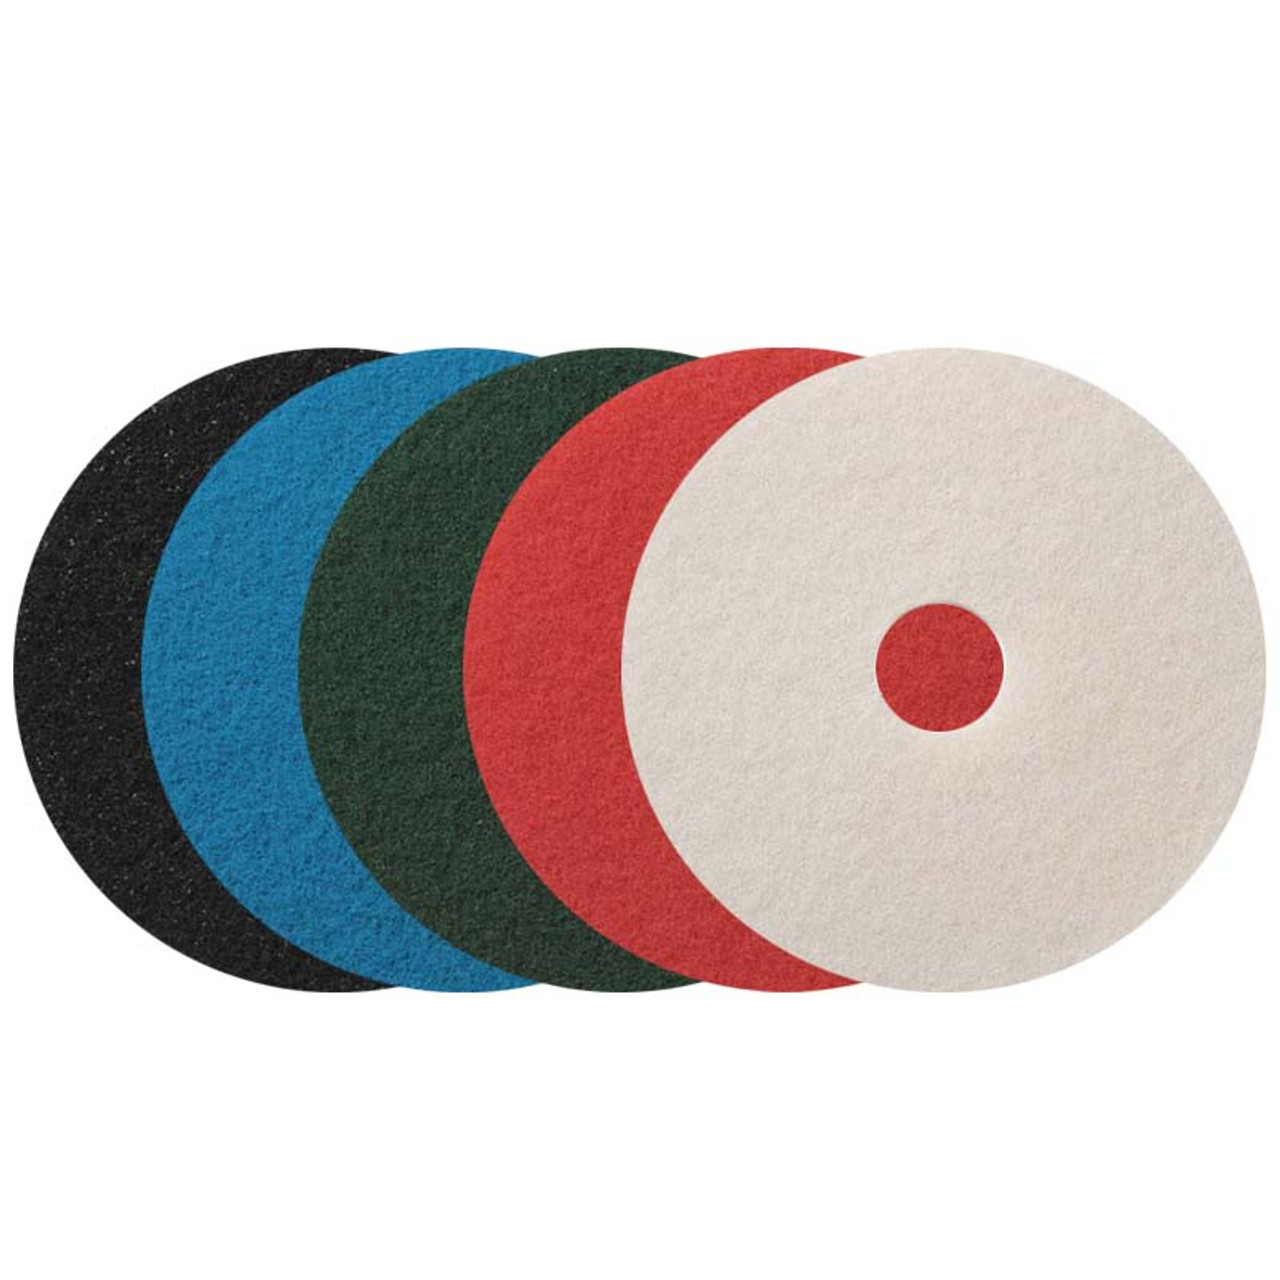 Oreck Orbiter Floor Pads 4370vp 12 Inch Variety Pack Standard Speeds Up To 300 Rpm One Each Of Black Brown Green Red White Case Of 5 Pads Total